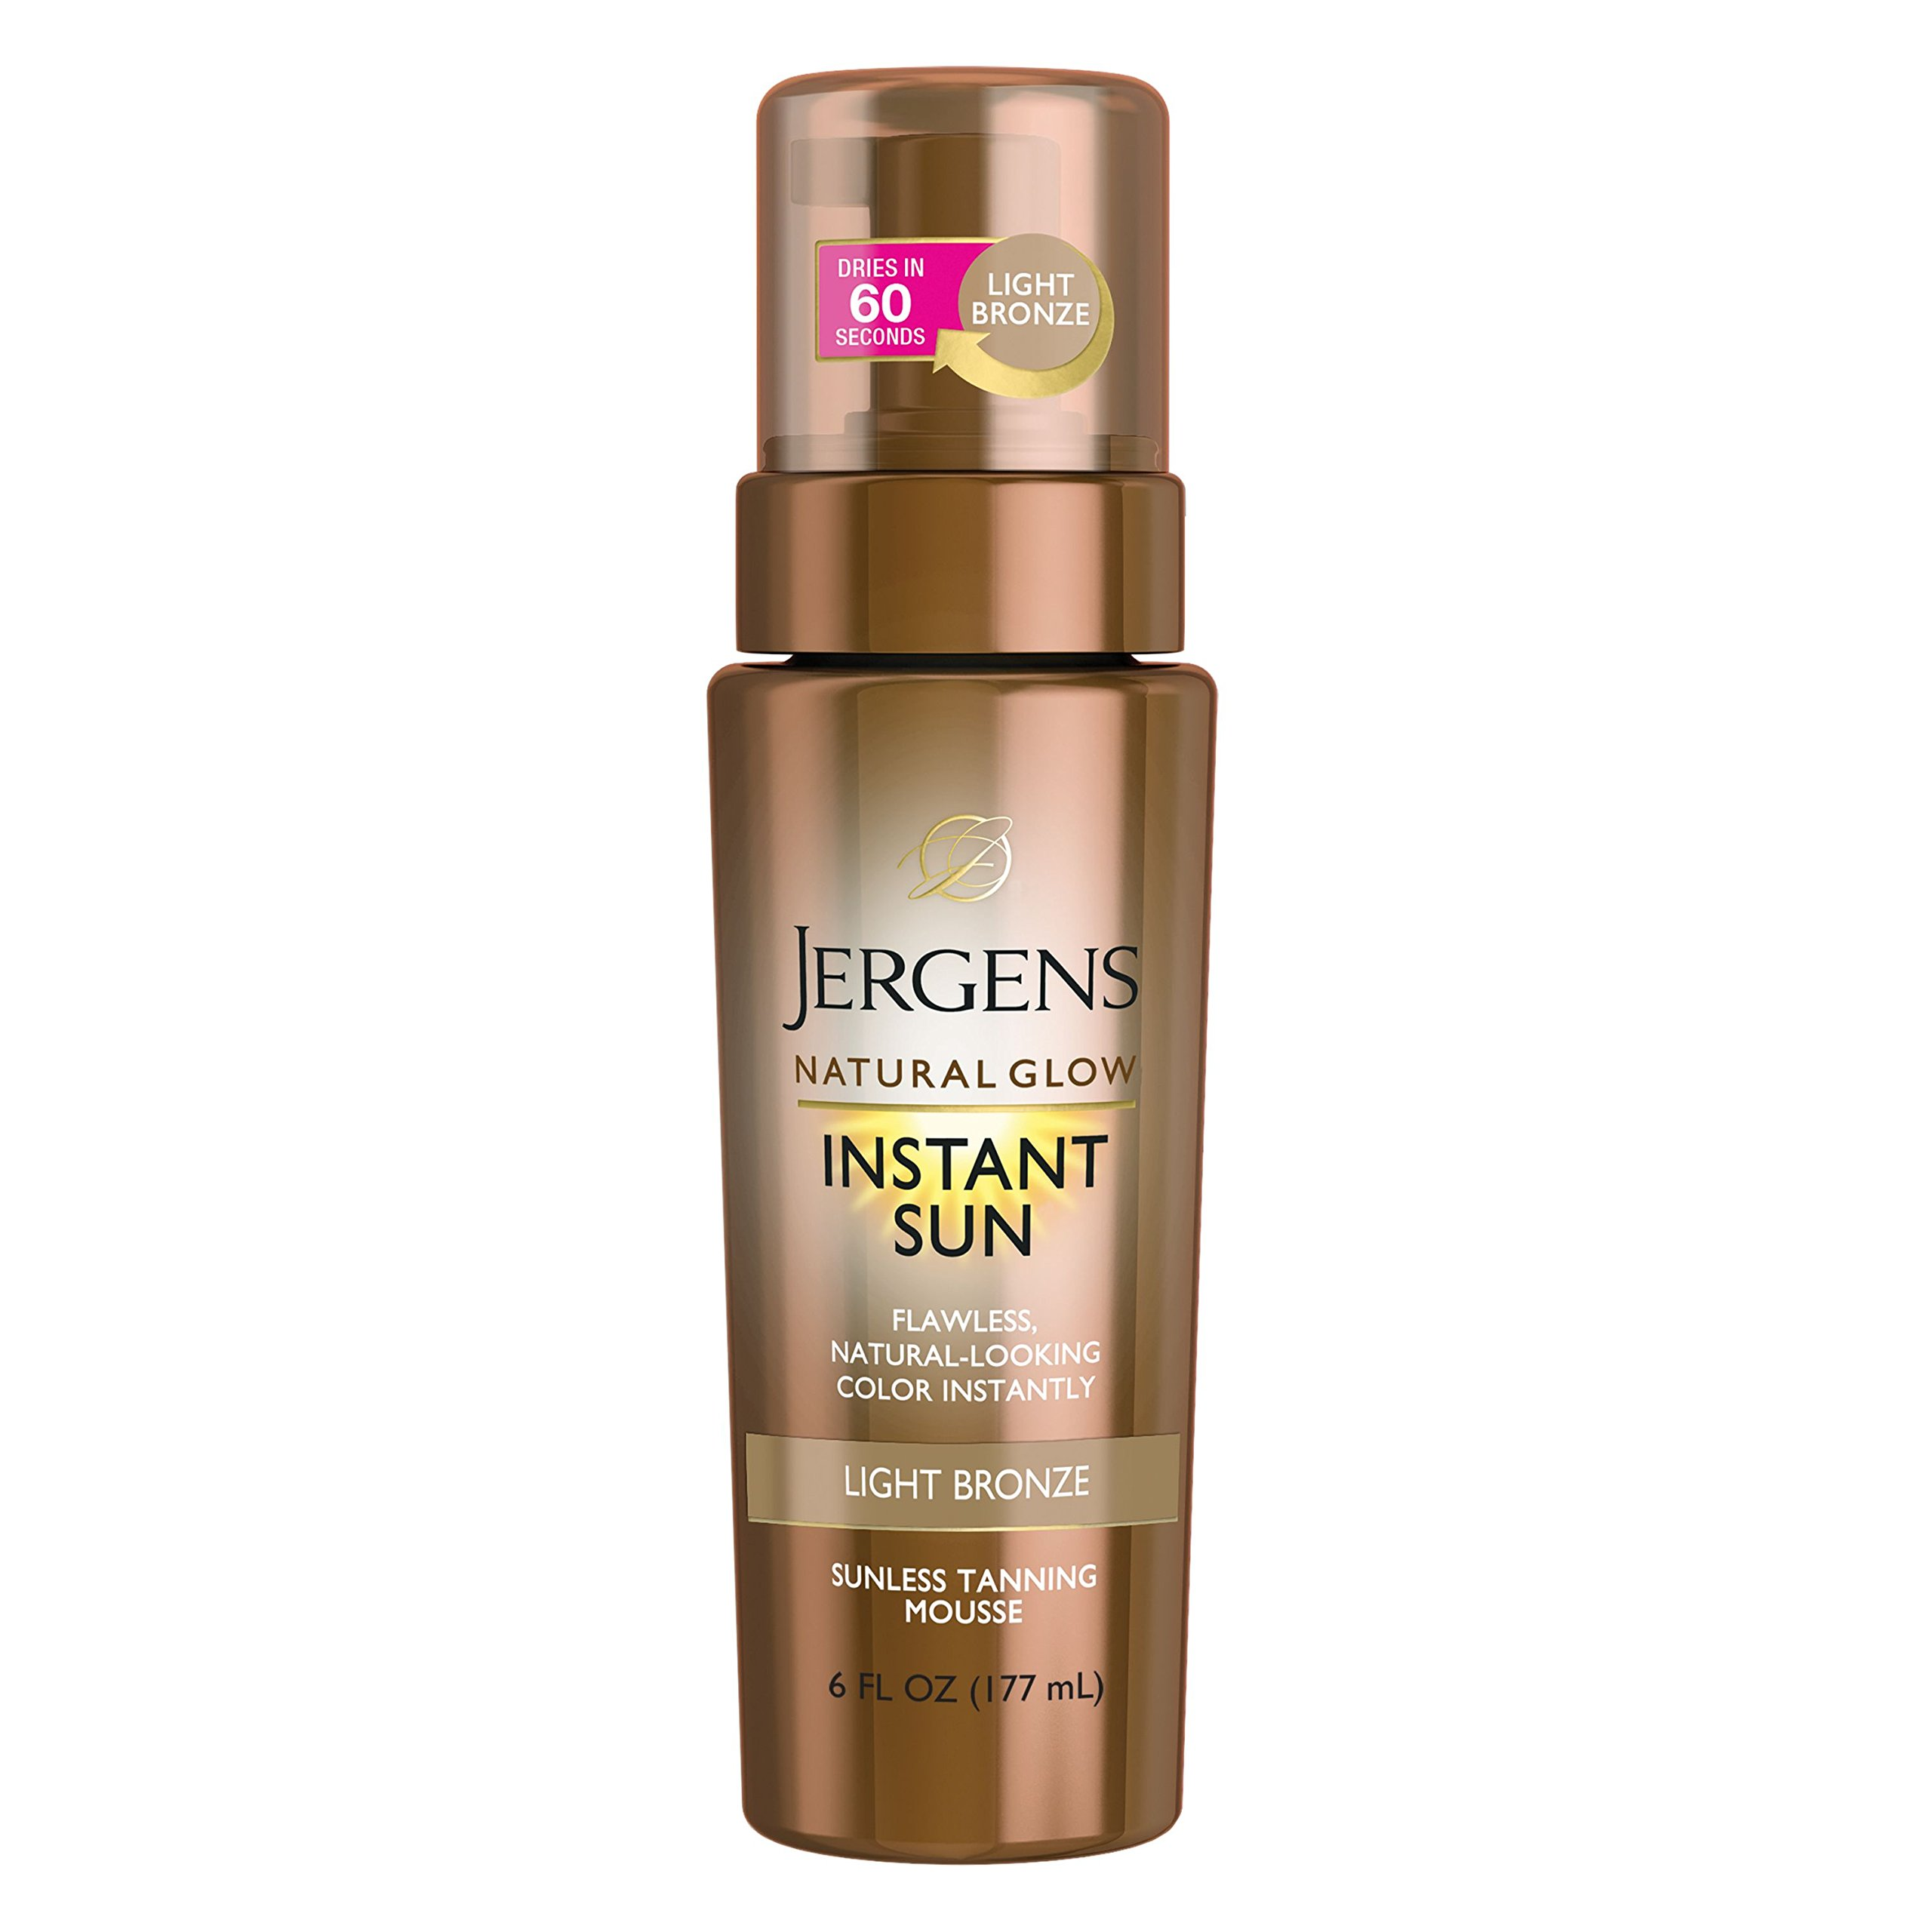 jergens natural glow instructions